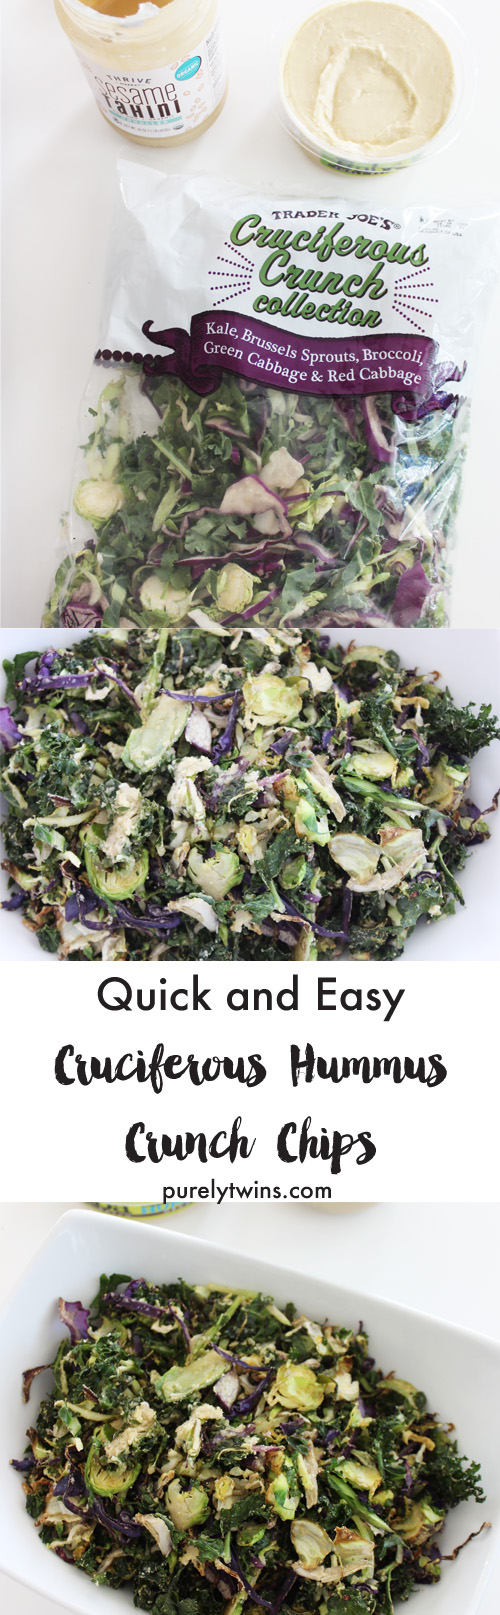 Delicious alternative to the classic kale chip. Super flavorful, cabbage kale slaw mix with a creamy hummus tahini dressing roasted to a light crunch. Perfect recipe for a simple side dish or top with your favorite meat of choice for a nice simple meal.